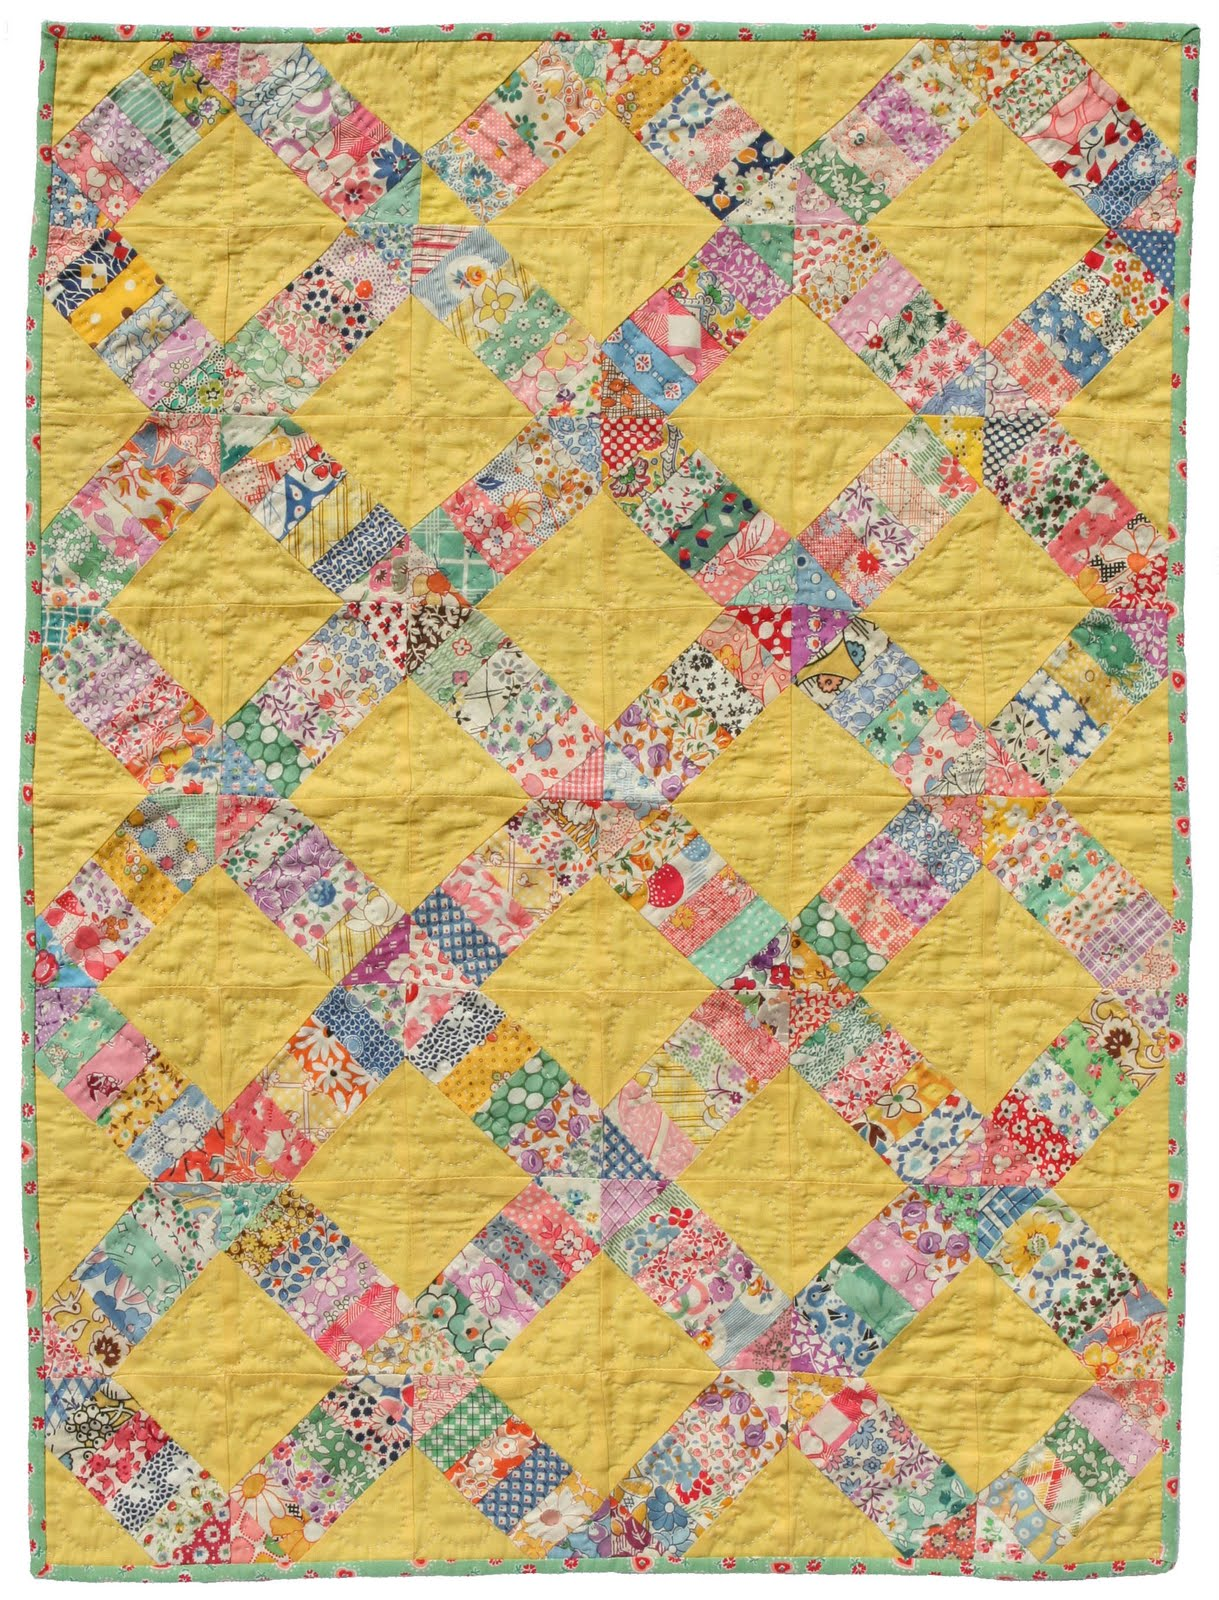 1000 Images About 1930 S Reproduction Quilt Fabric On